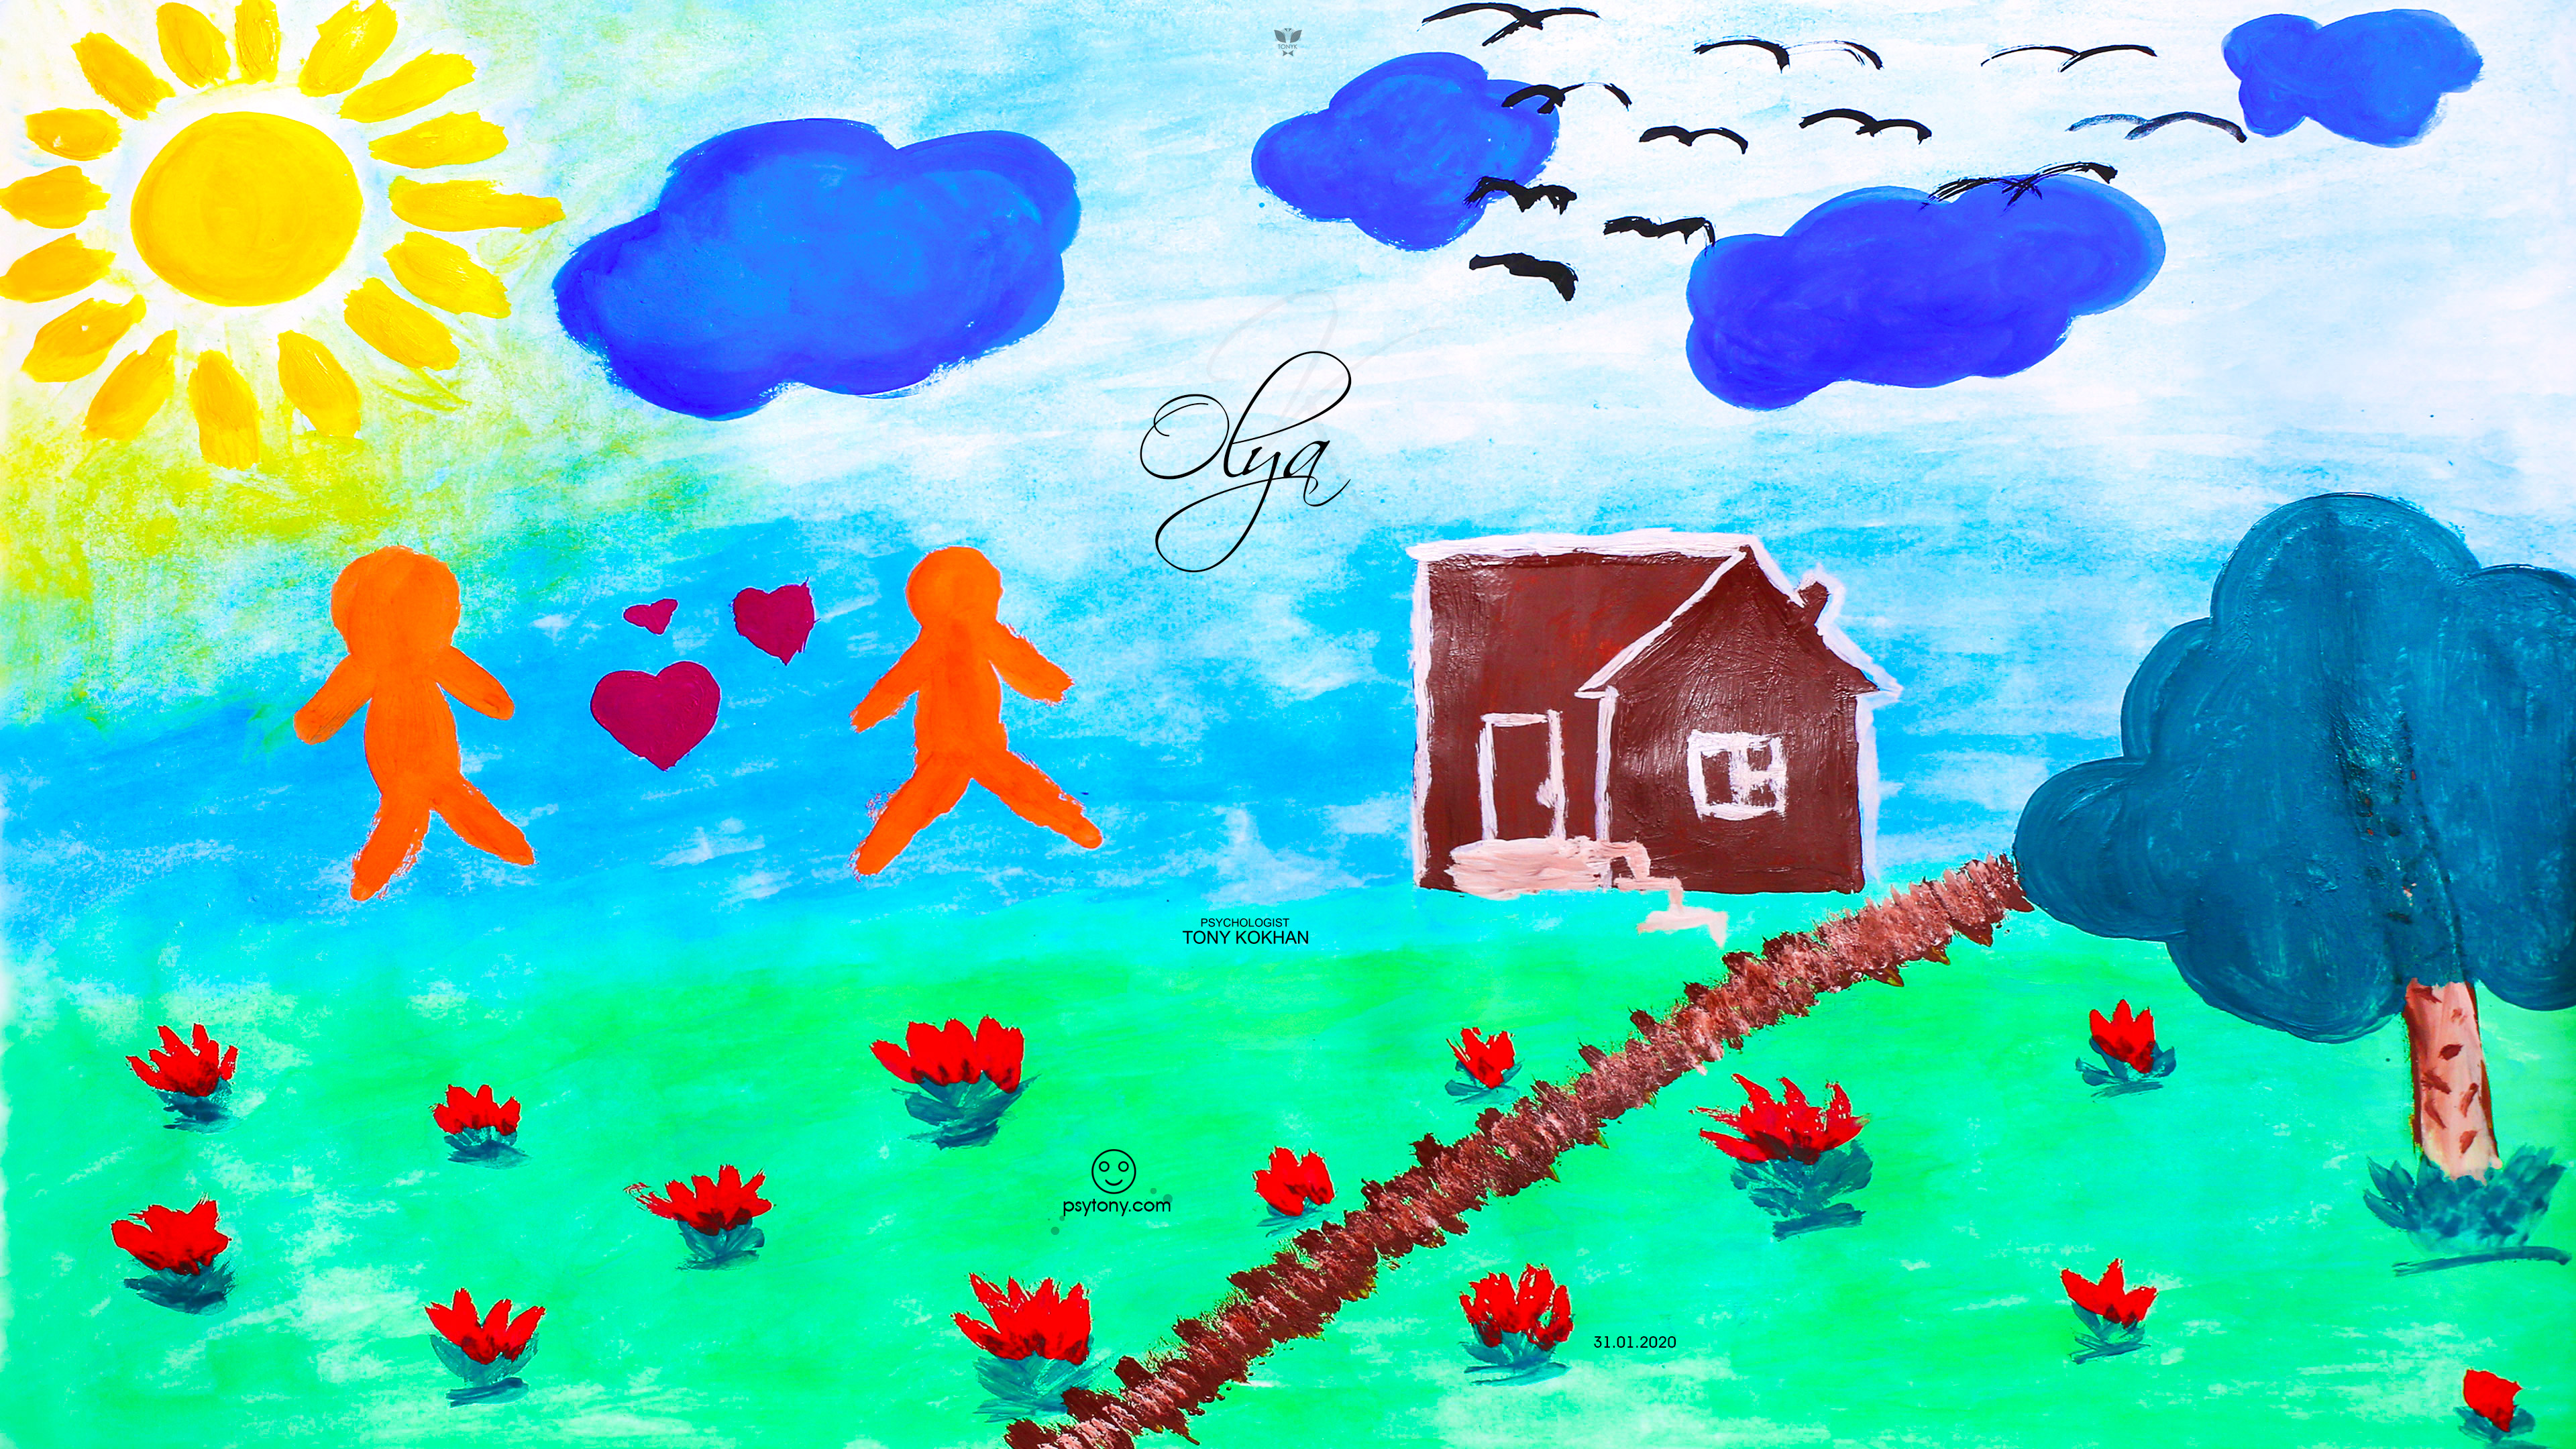 Olya-Soul-Girl-Nature-Sun-Grass-Tree-Sky-Clouds-Birds-Fire-Flowers-Angry-Home-Love-Heart-Boy-Girl-Gouache-Picture-Art-2020-Multicolors-4K-Wallpapers-by-Psychologist-Tony-Kokhan-www.psytony.com-image